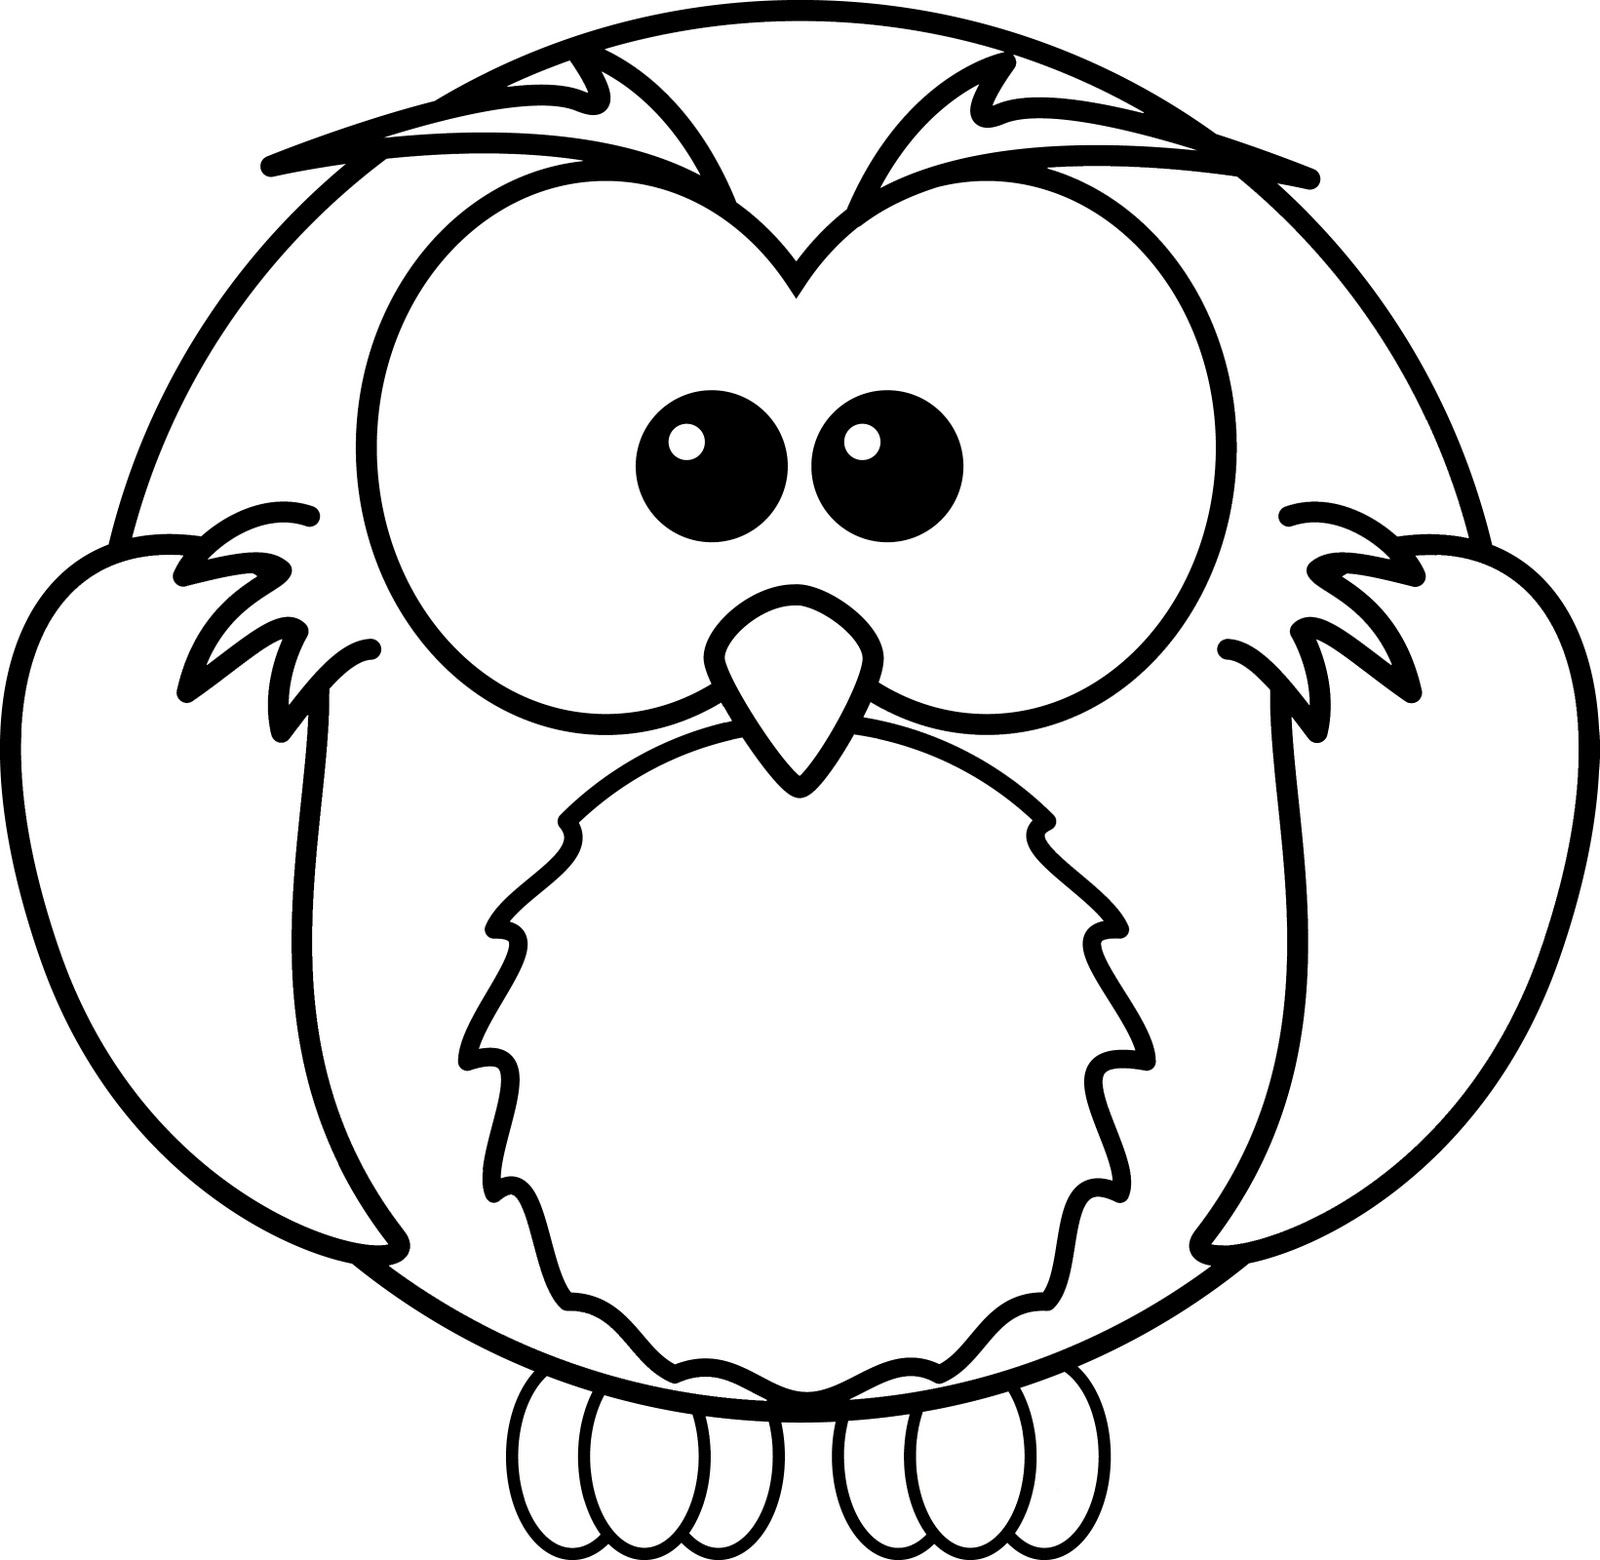 picture of owls to color print download owl coloring pages for your kids of color owls to picture